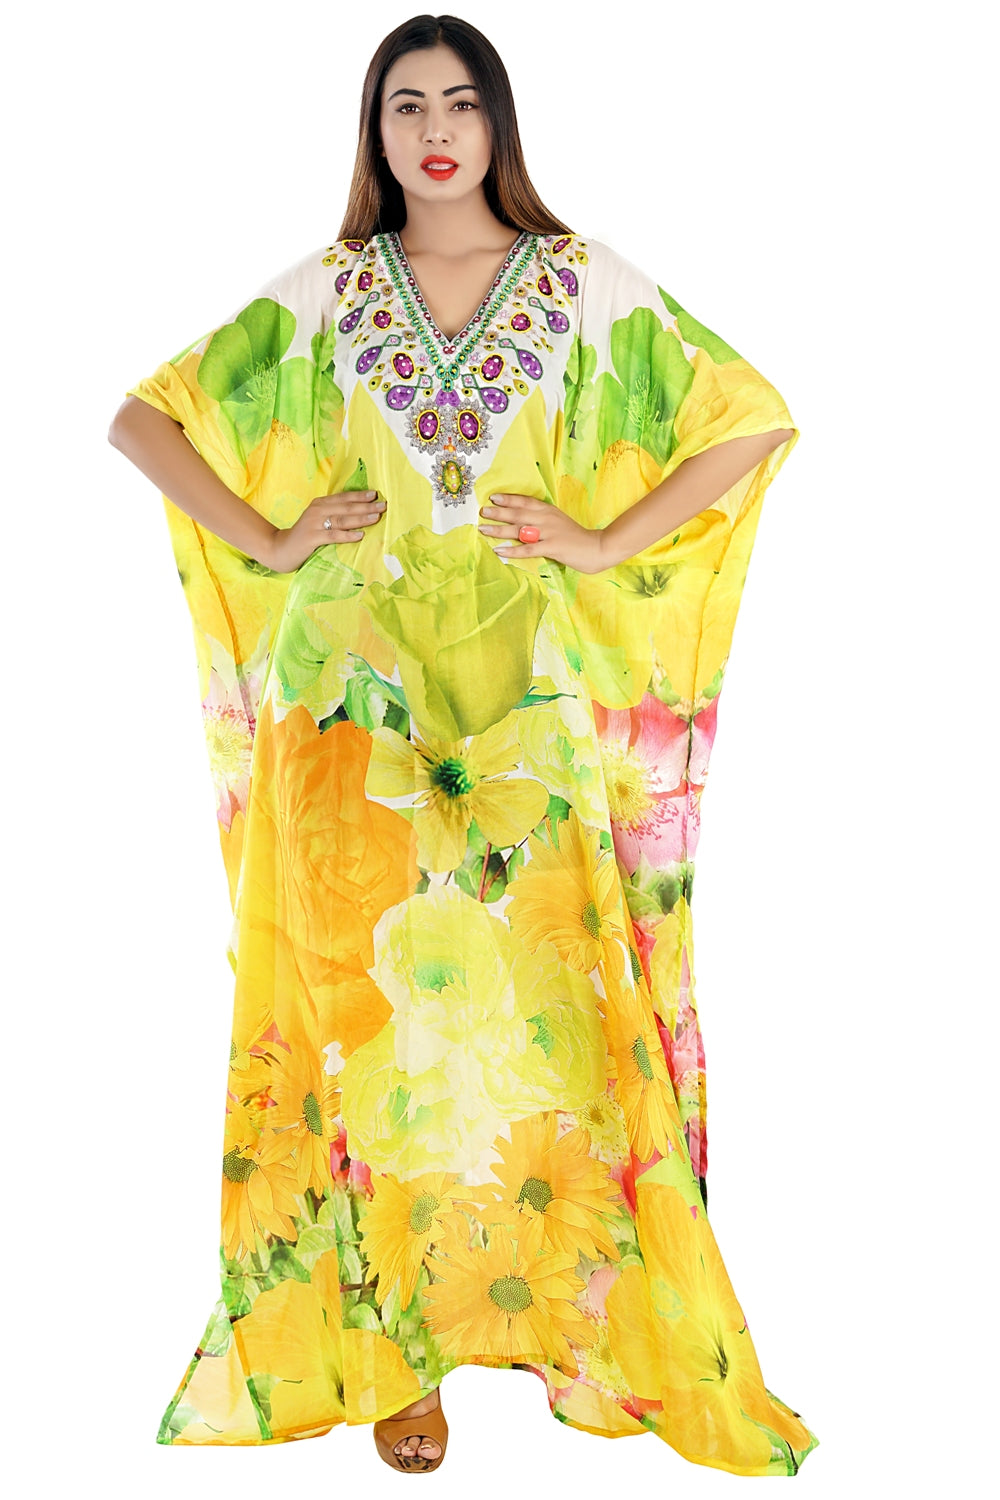 Enchanting Abstract Floral Silk Evening Kaftan in large Floral Pattern vacation beach outfits - Silk kaftan